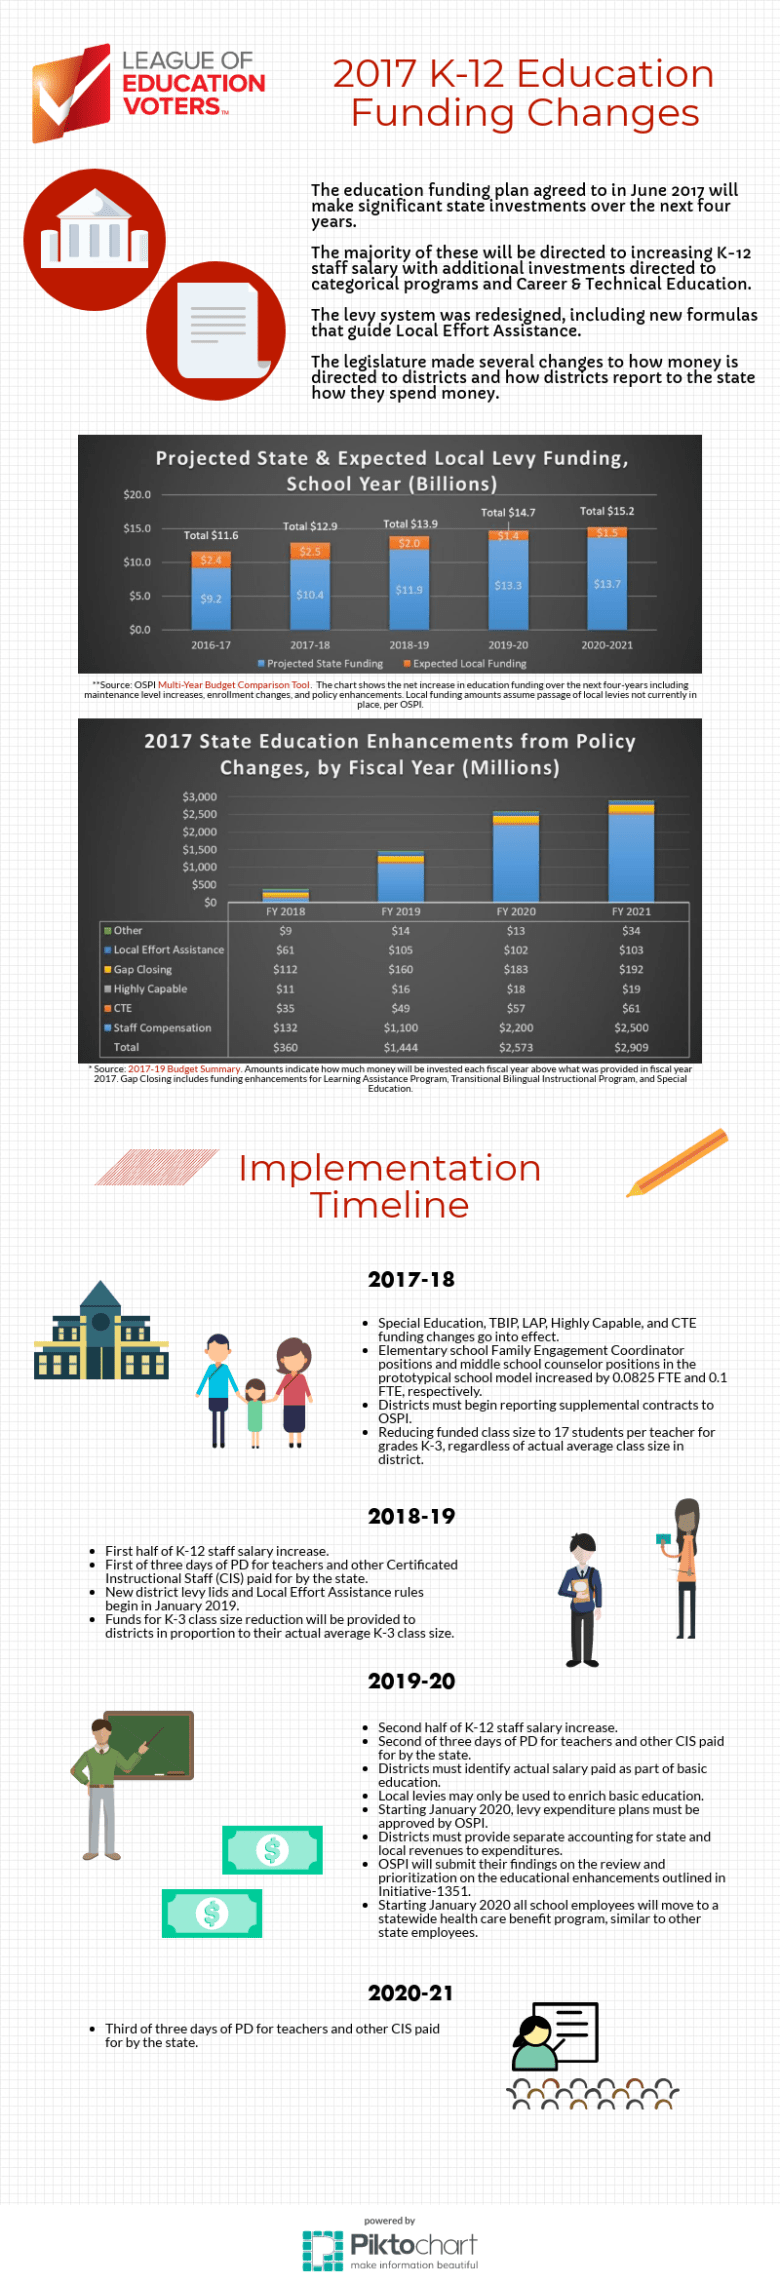 2017 K-12 Education Funding Changes Infographic